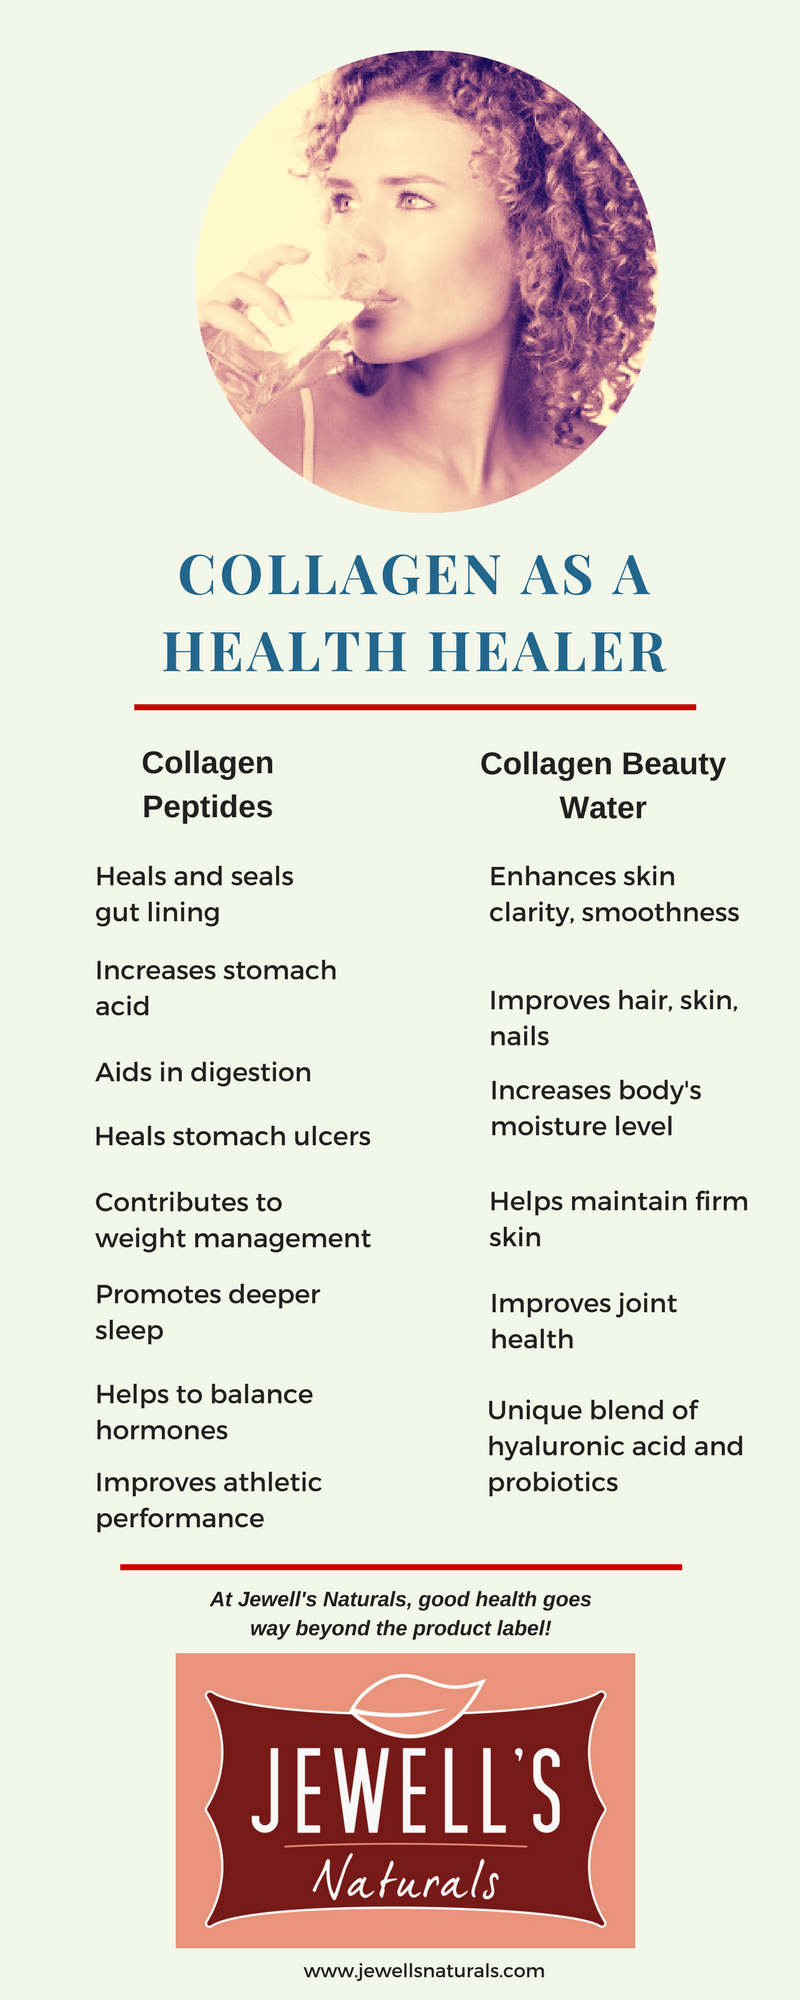 Collagen as a Health Healer Infographic